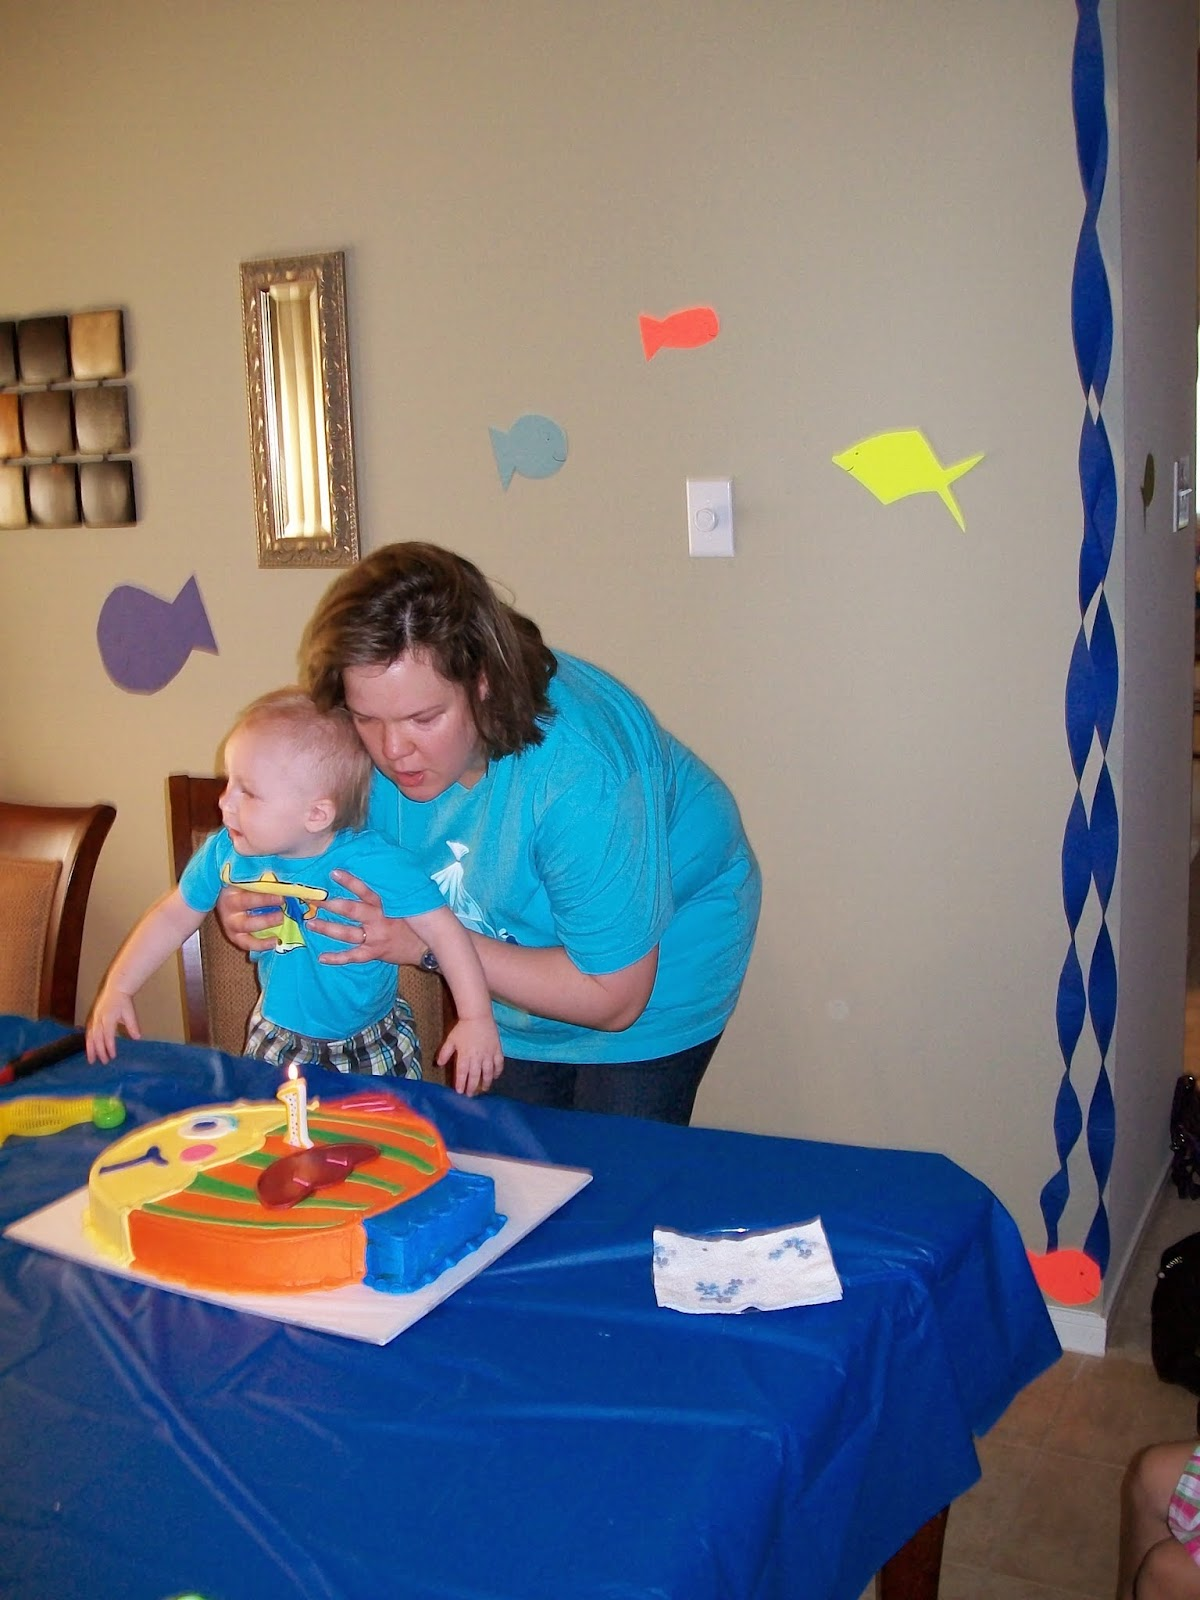 Marshalls First Birthday Party - 100_1407.JPG